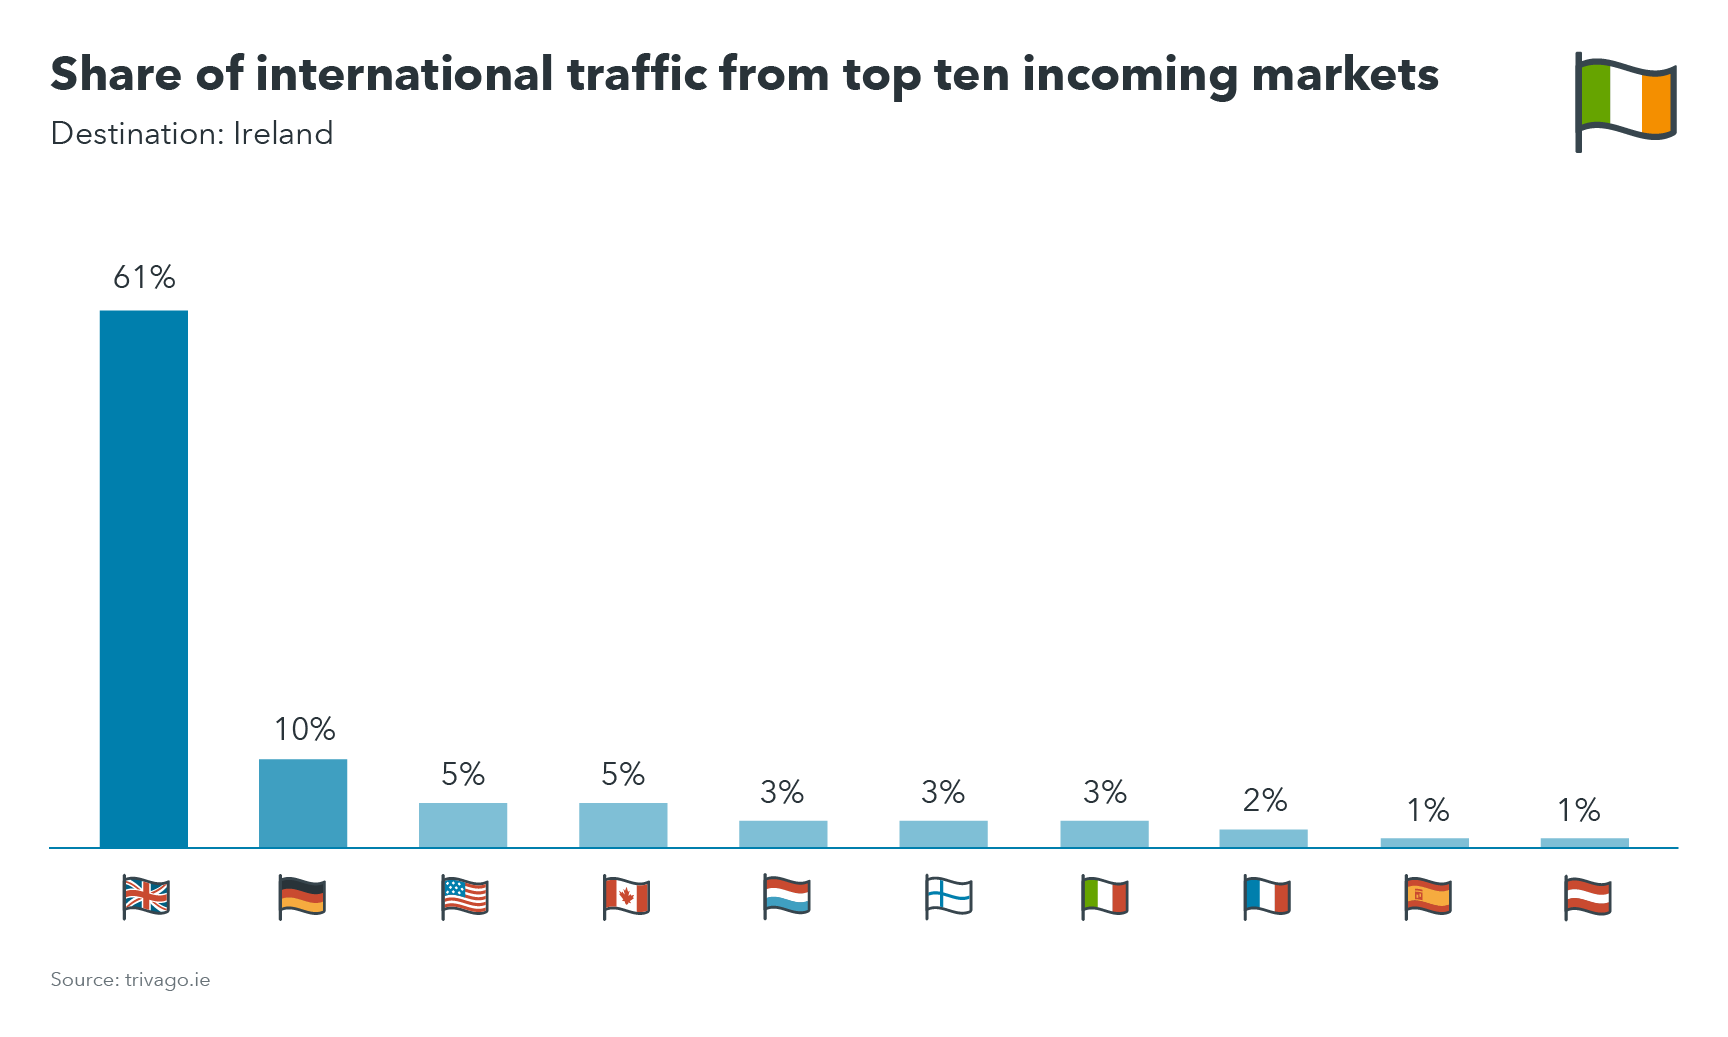 Chart showing share of international traffic from top ten incoming markets to Ireland destinations